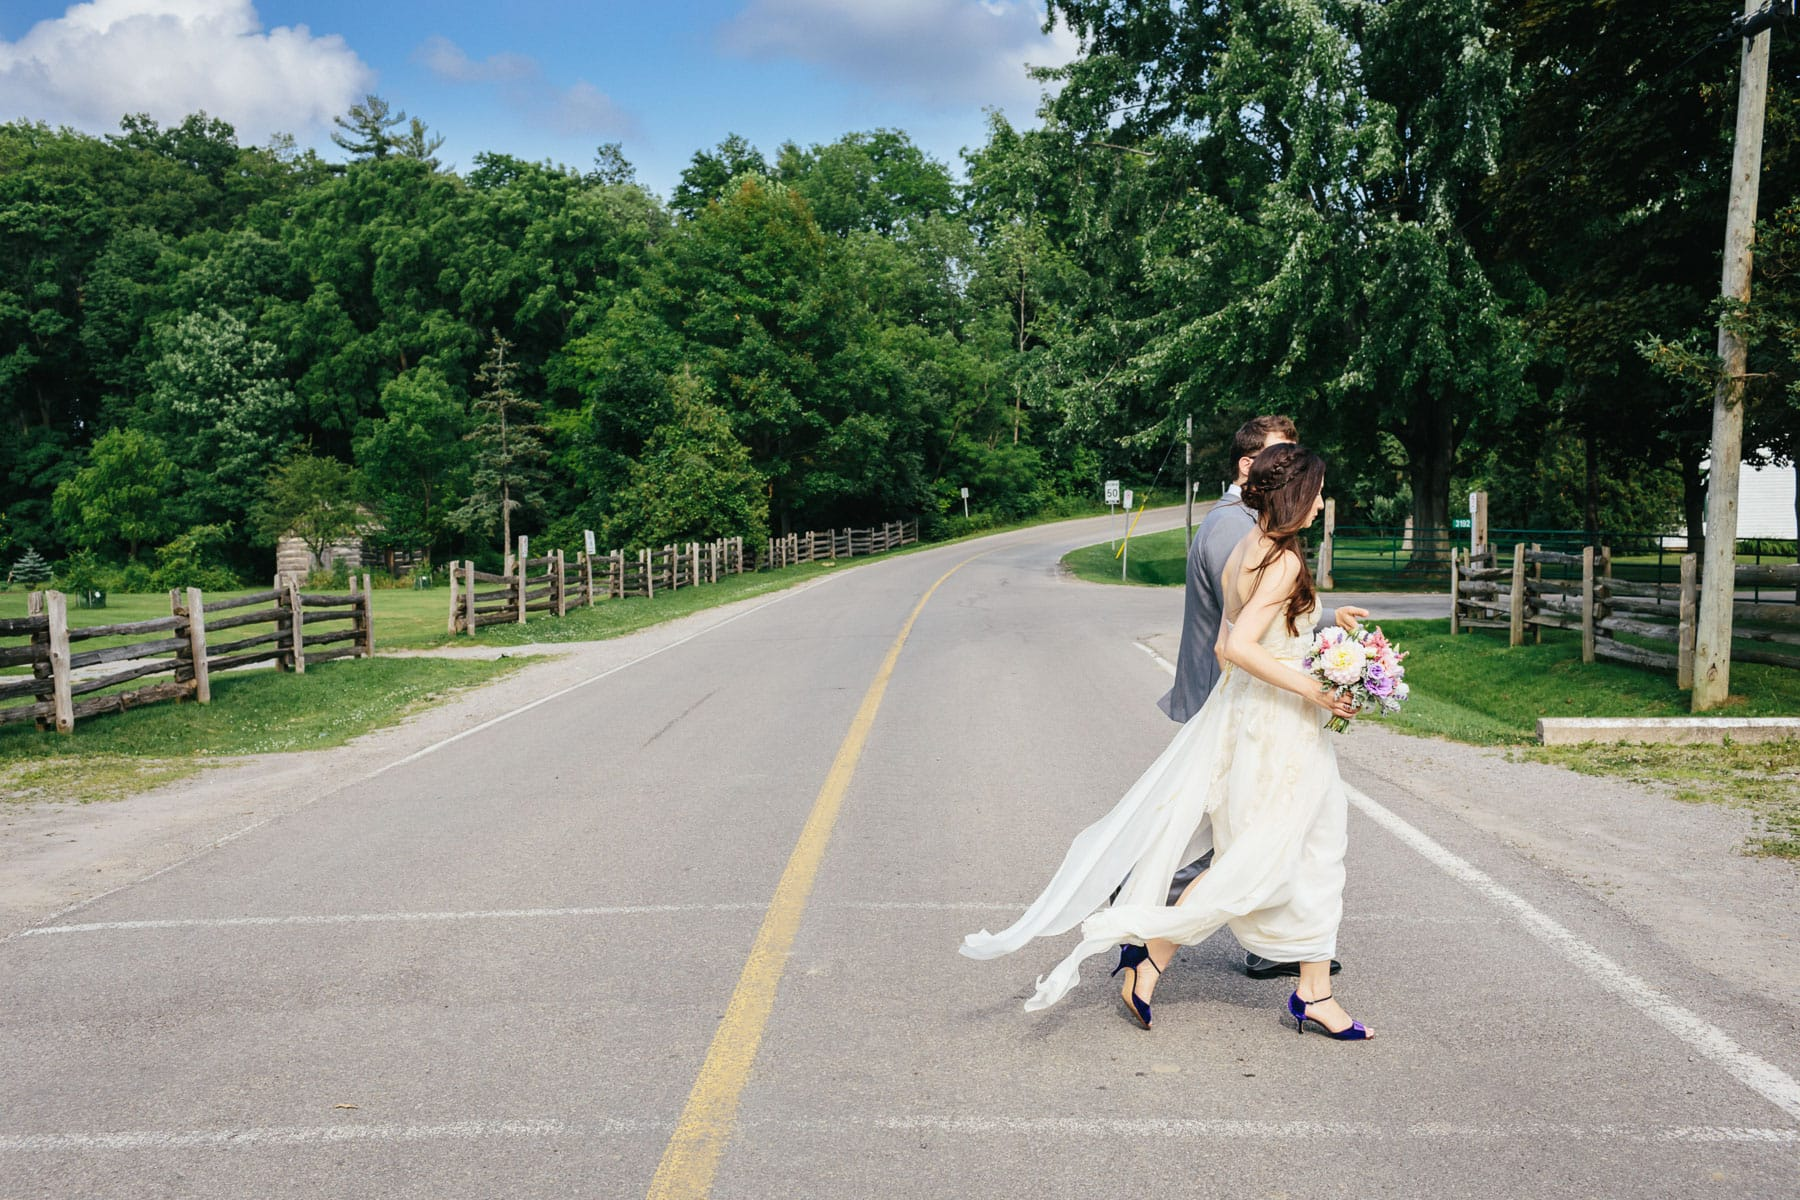 Bride and groom crossing a rural road in this rustic Ball's Falls wedding.